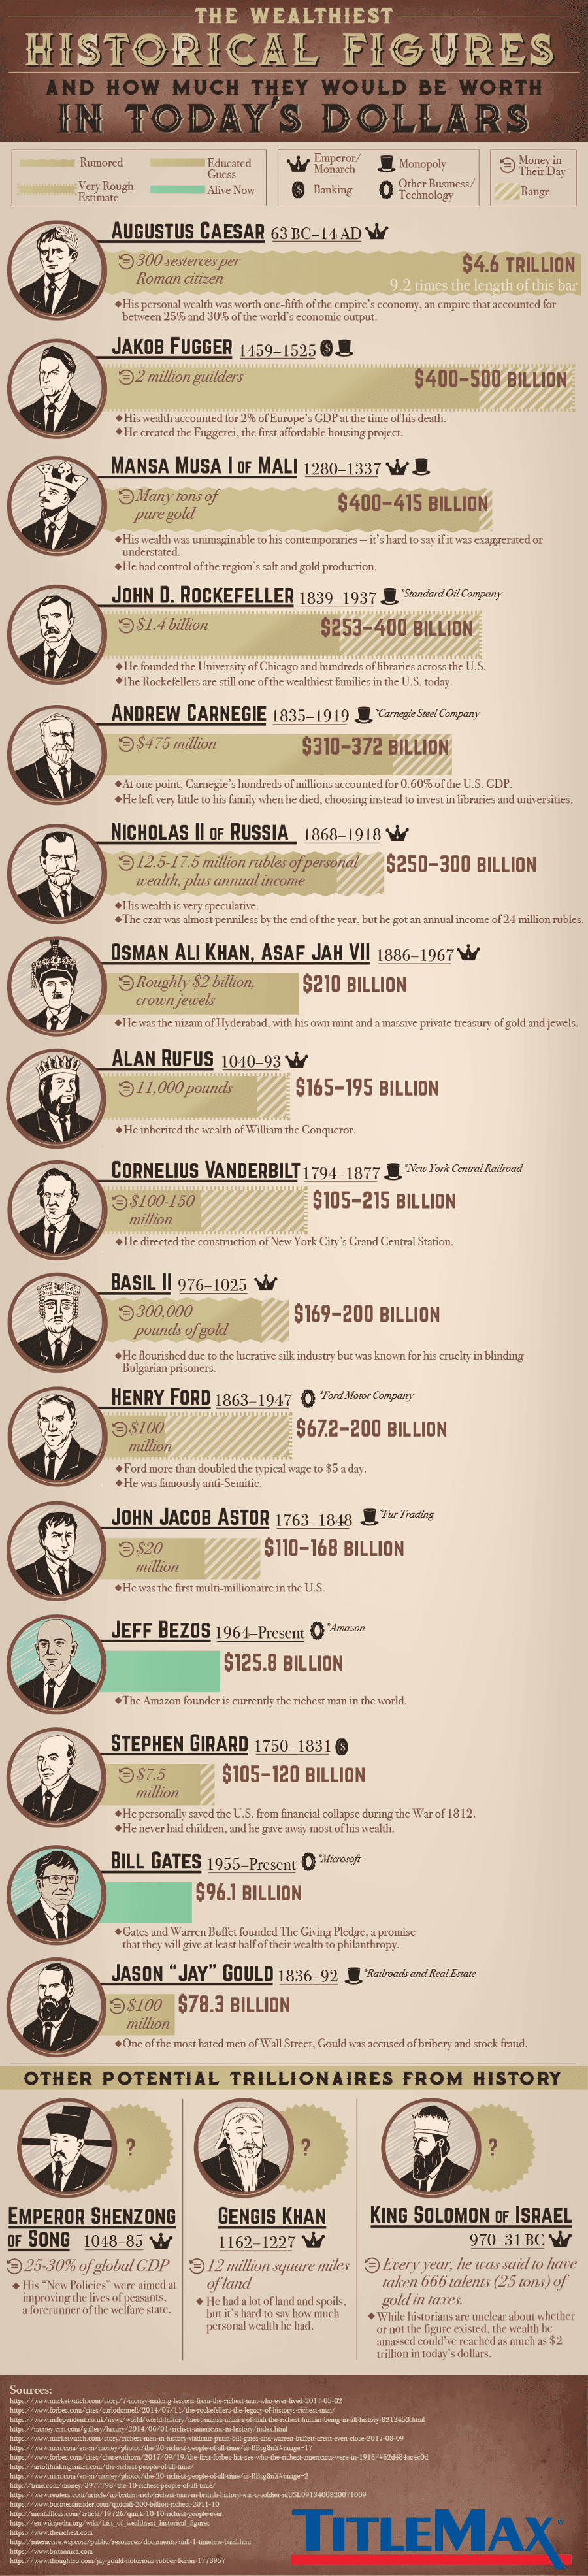 The Wealthiest Historical Figures in Today's Dollars #infographic